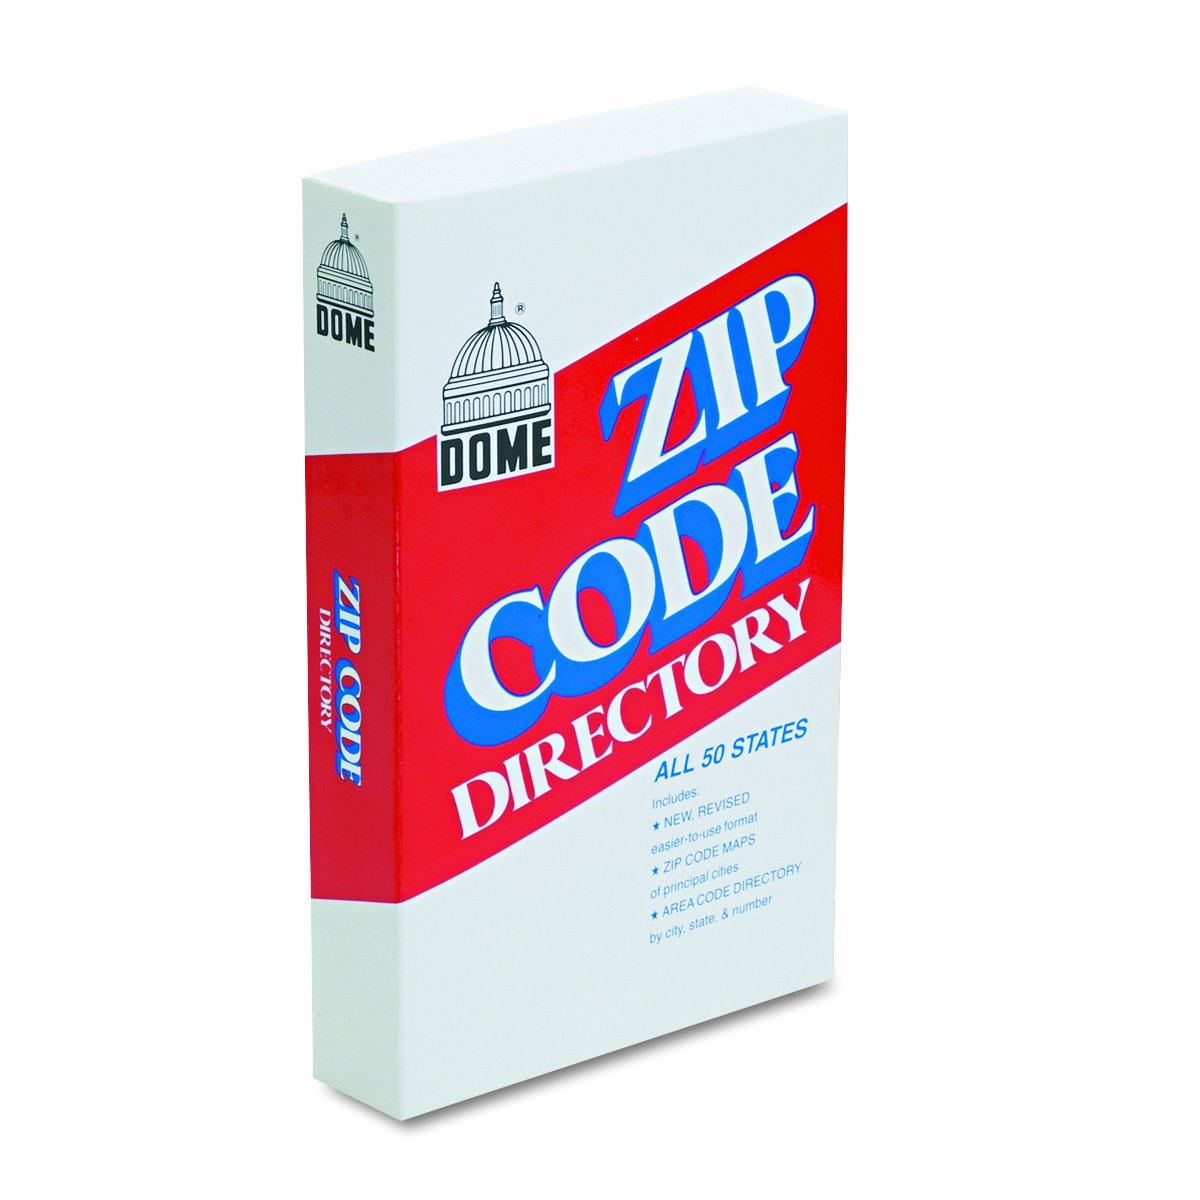 Amazon.com: Dome 5100 Zip Code Directory, Paperback, 750 Pages ... on